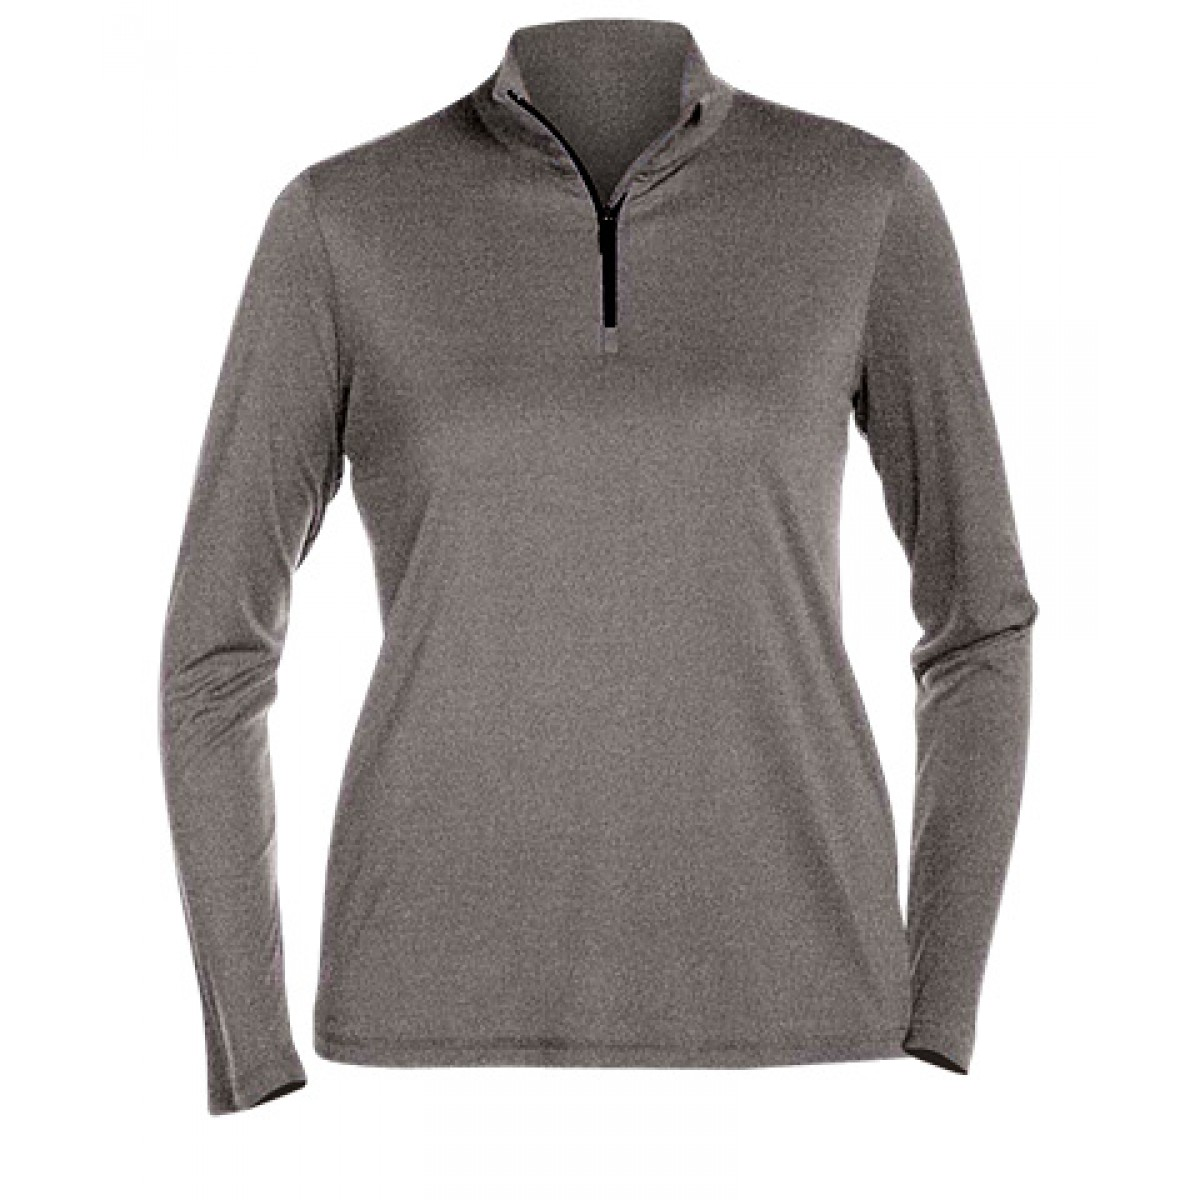 Ladies' Quarter-Zip Lightweight Pullover